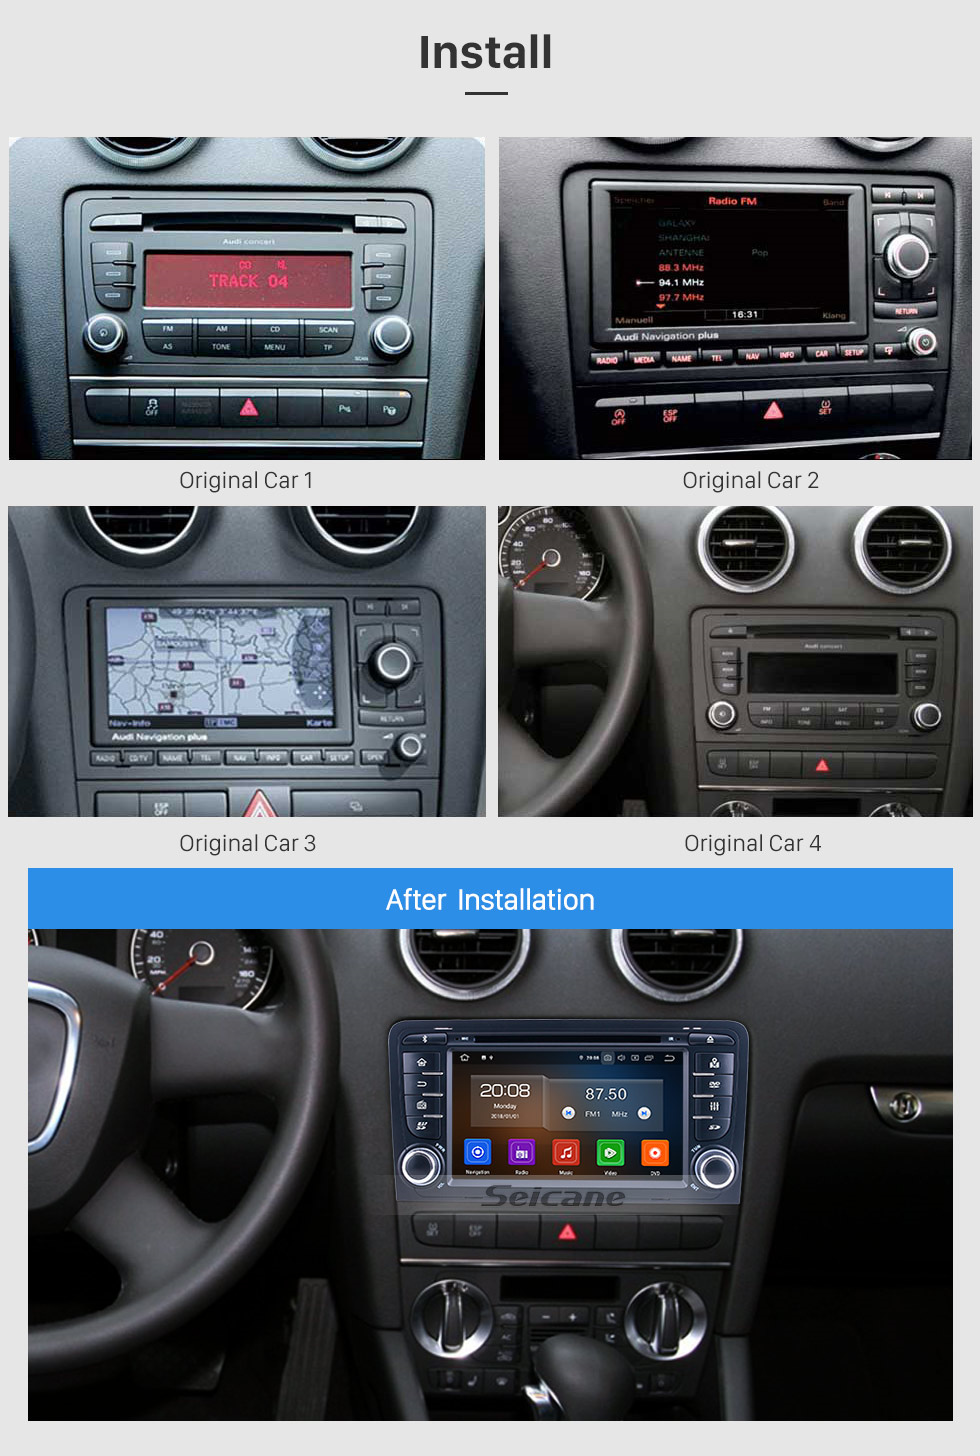 Seicane HD Touchscreen 7 inch Android 10.0 for 2011 Audi A3 Radio with GPS Navigation System Carplay Bluetooth support Digital TV